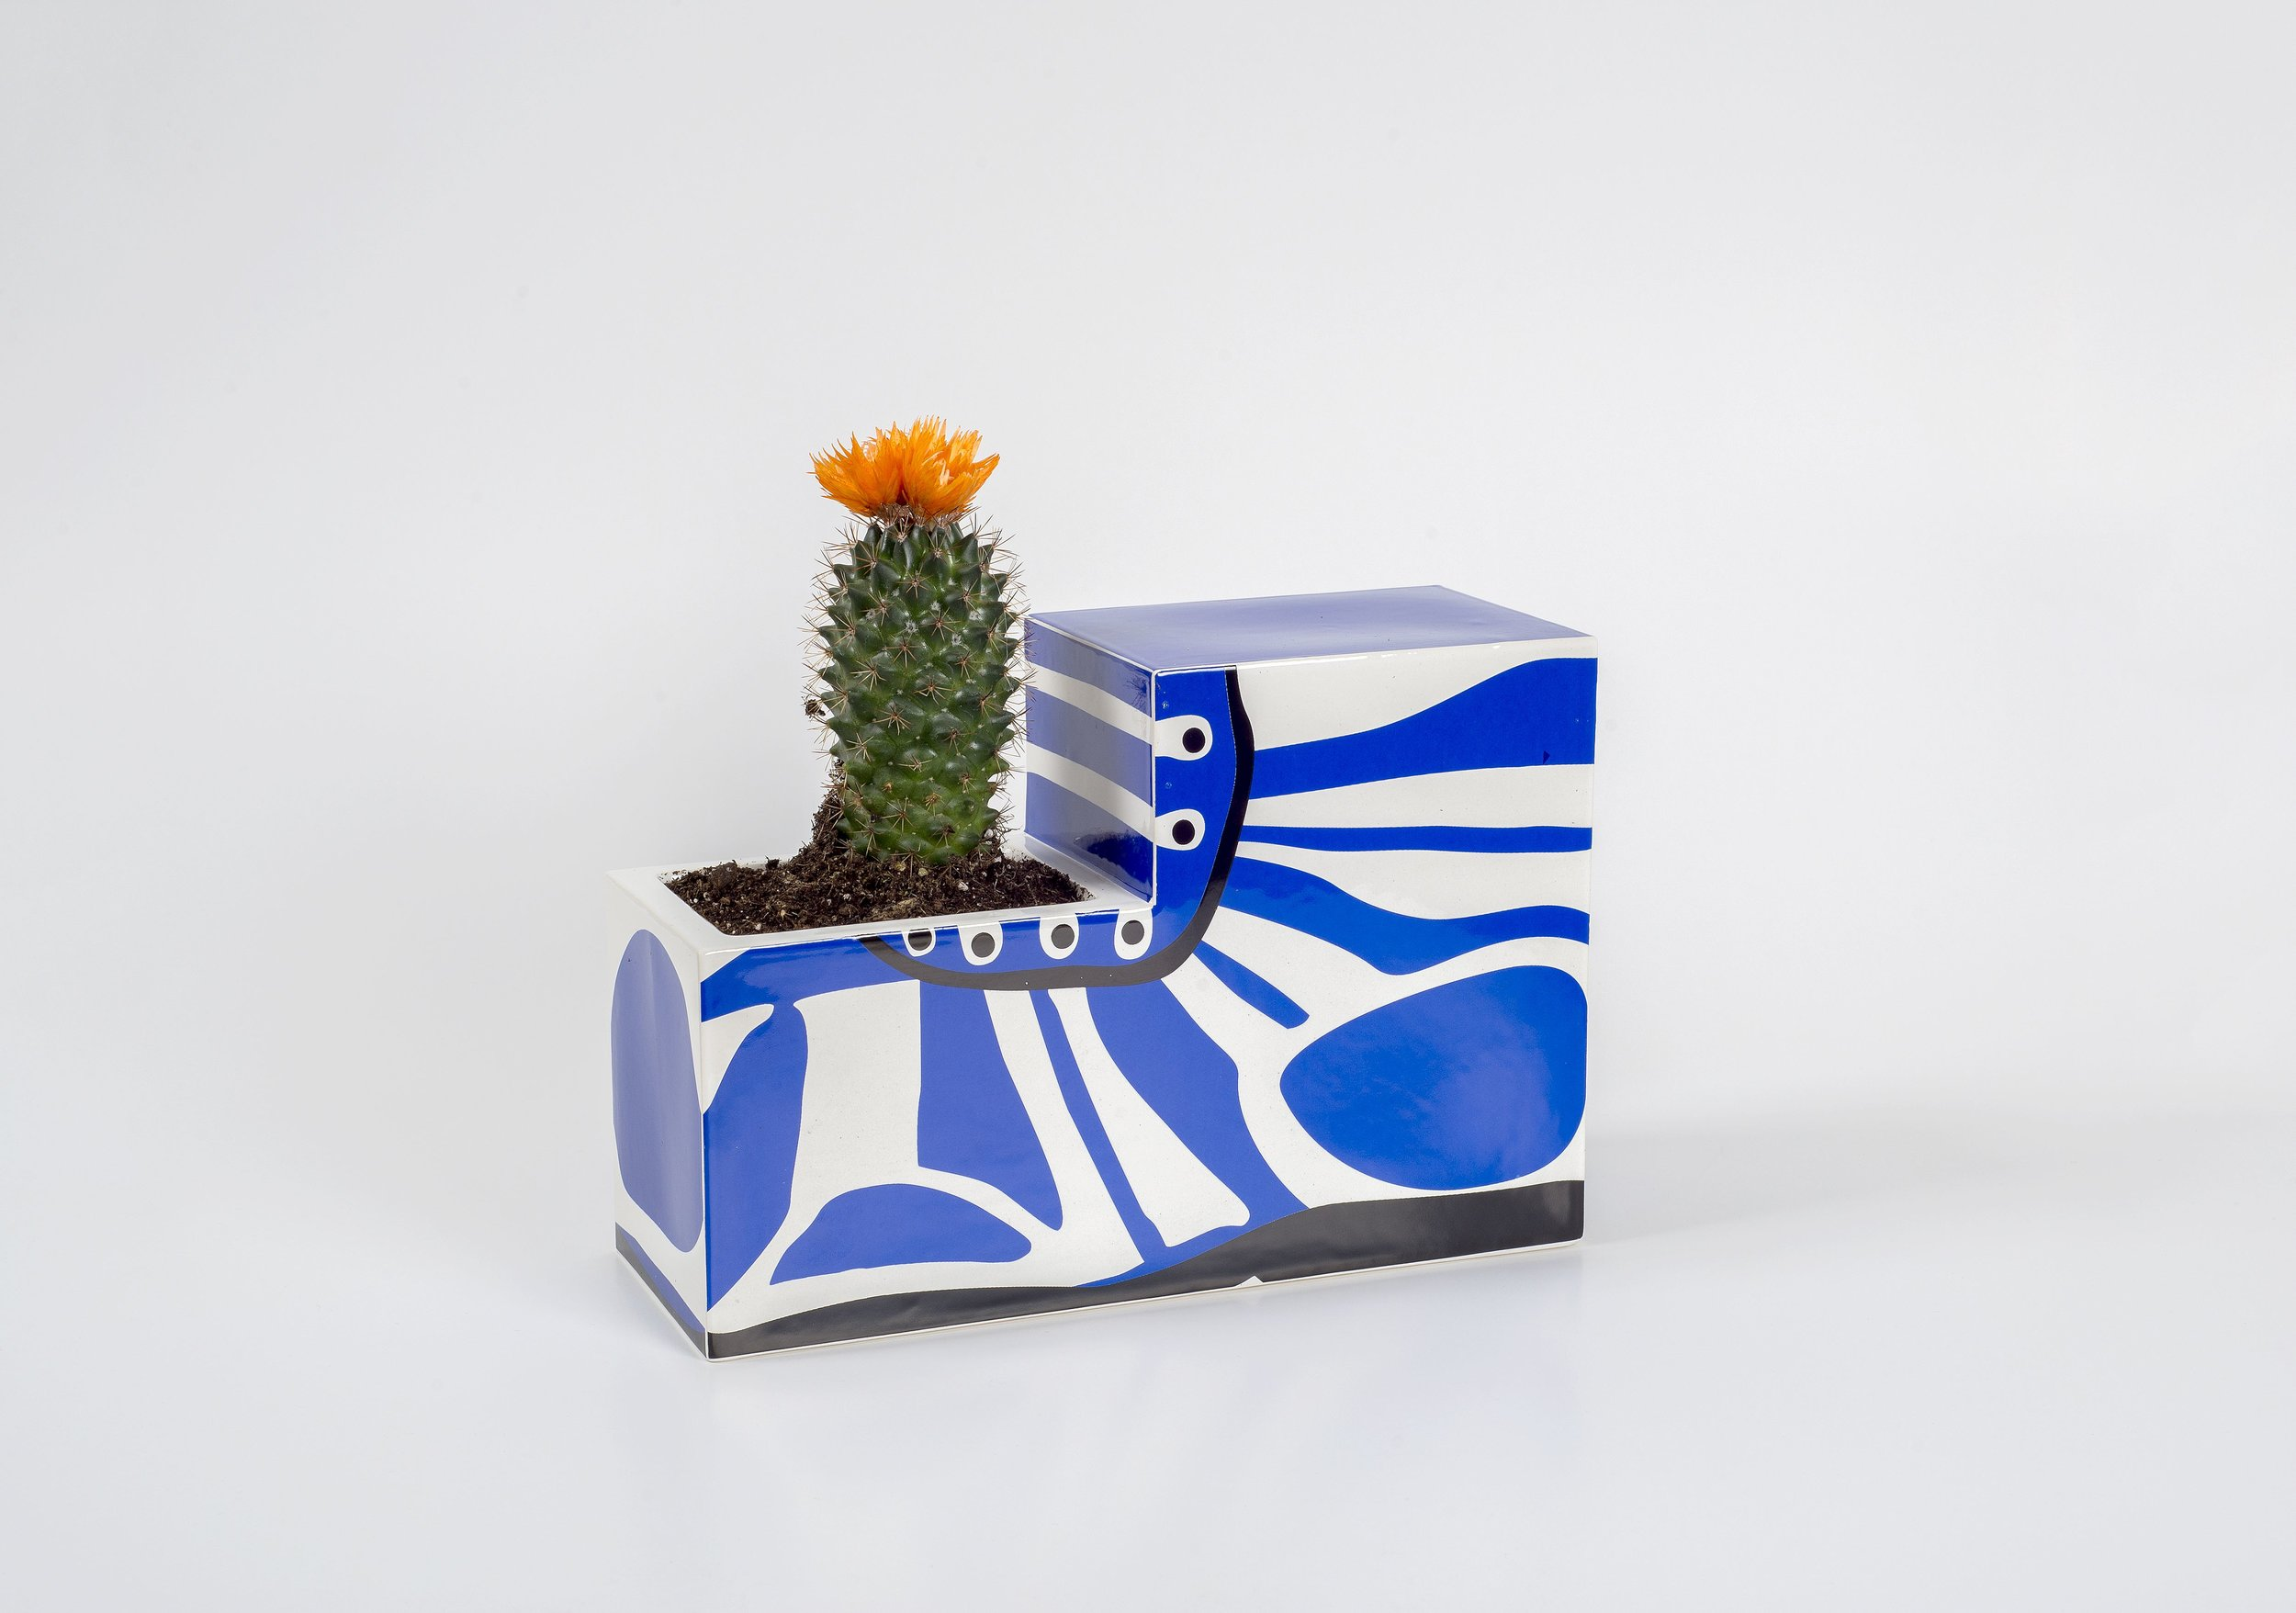 Joanne Tatham and Tom O'Sullivan  The indirect exchange of uncertain value (boot planter)  2013 Glazed ceramic 6 ¾h x 9 ⅘w x 3 ¾d in JTTO001